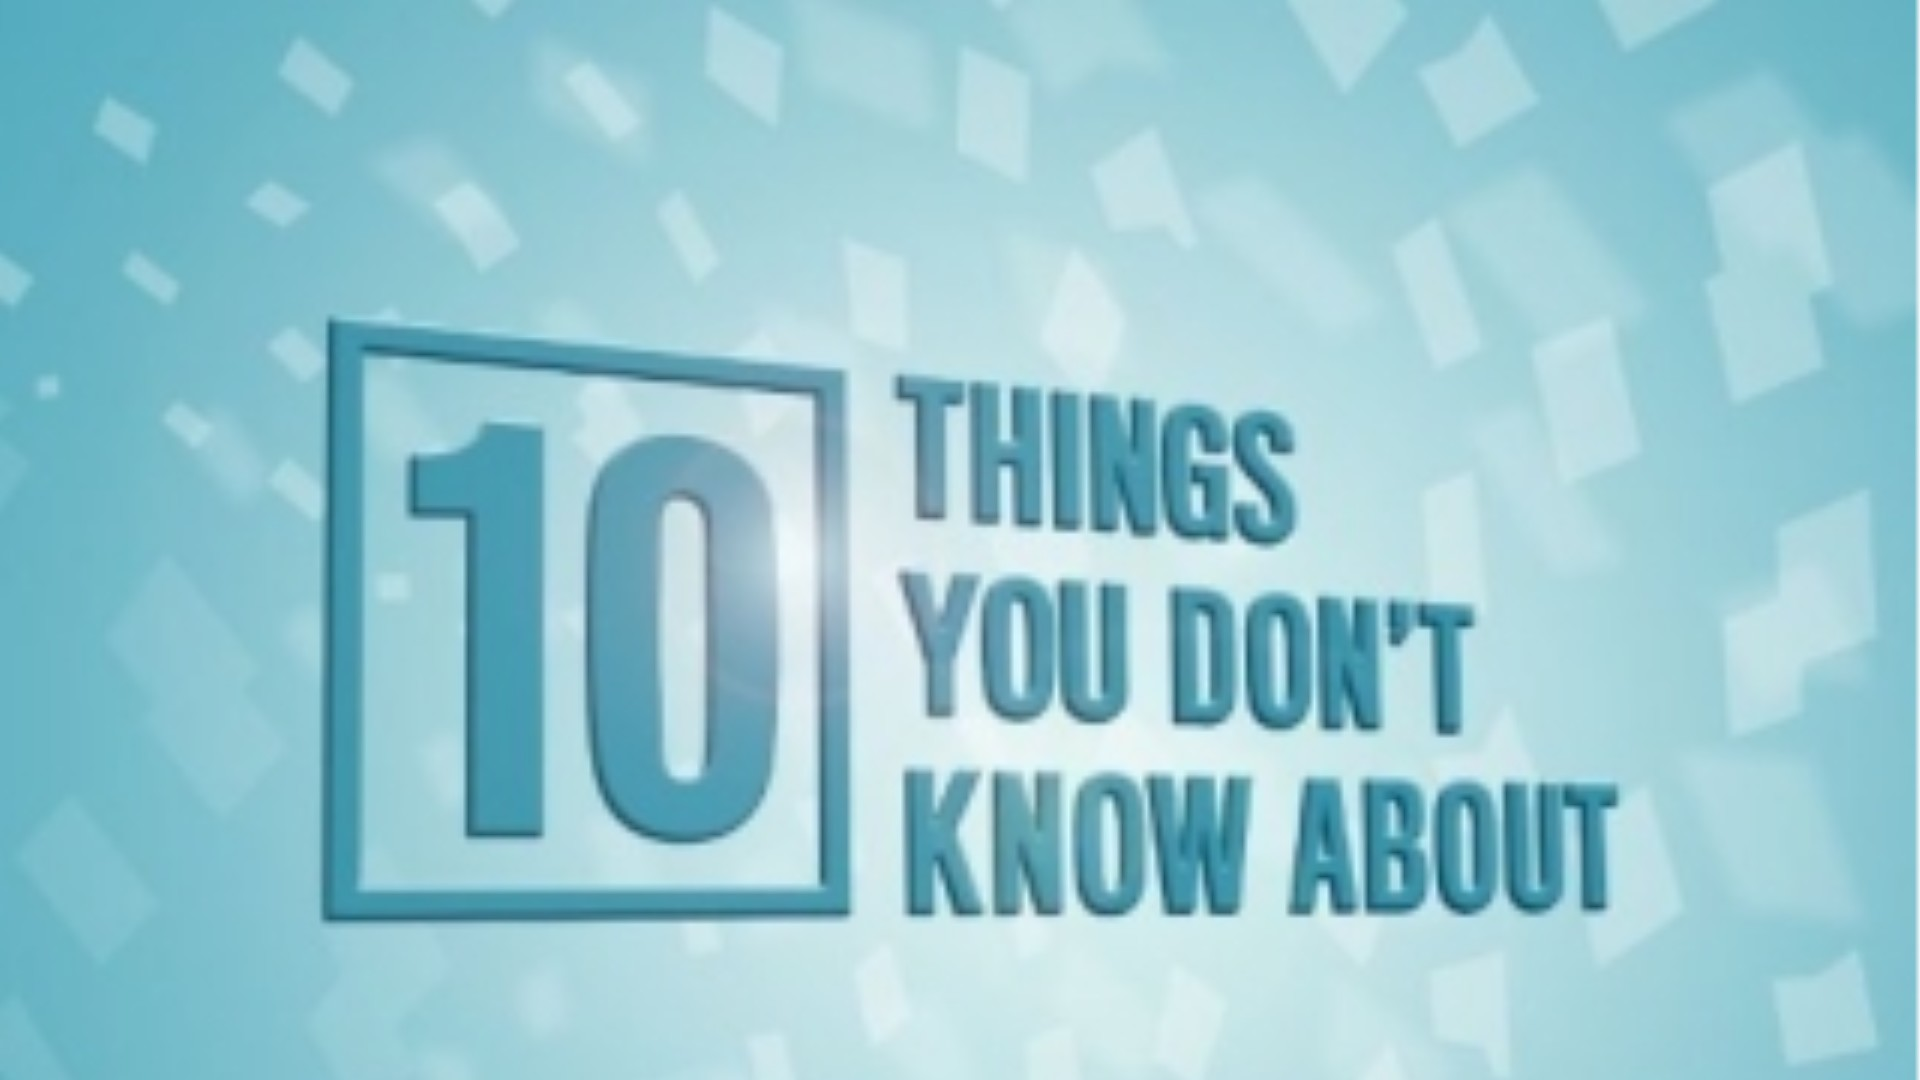 10 Things I Know About You: 10 Things You Don't Know About (TV Series 2012